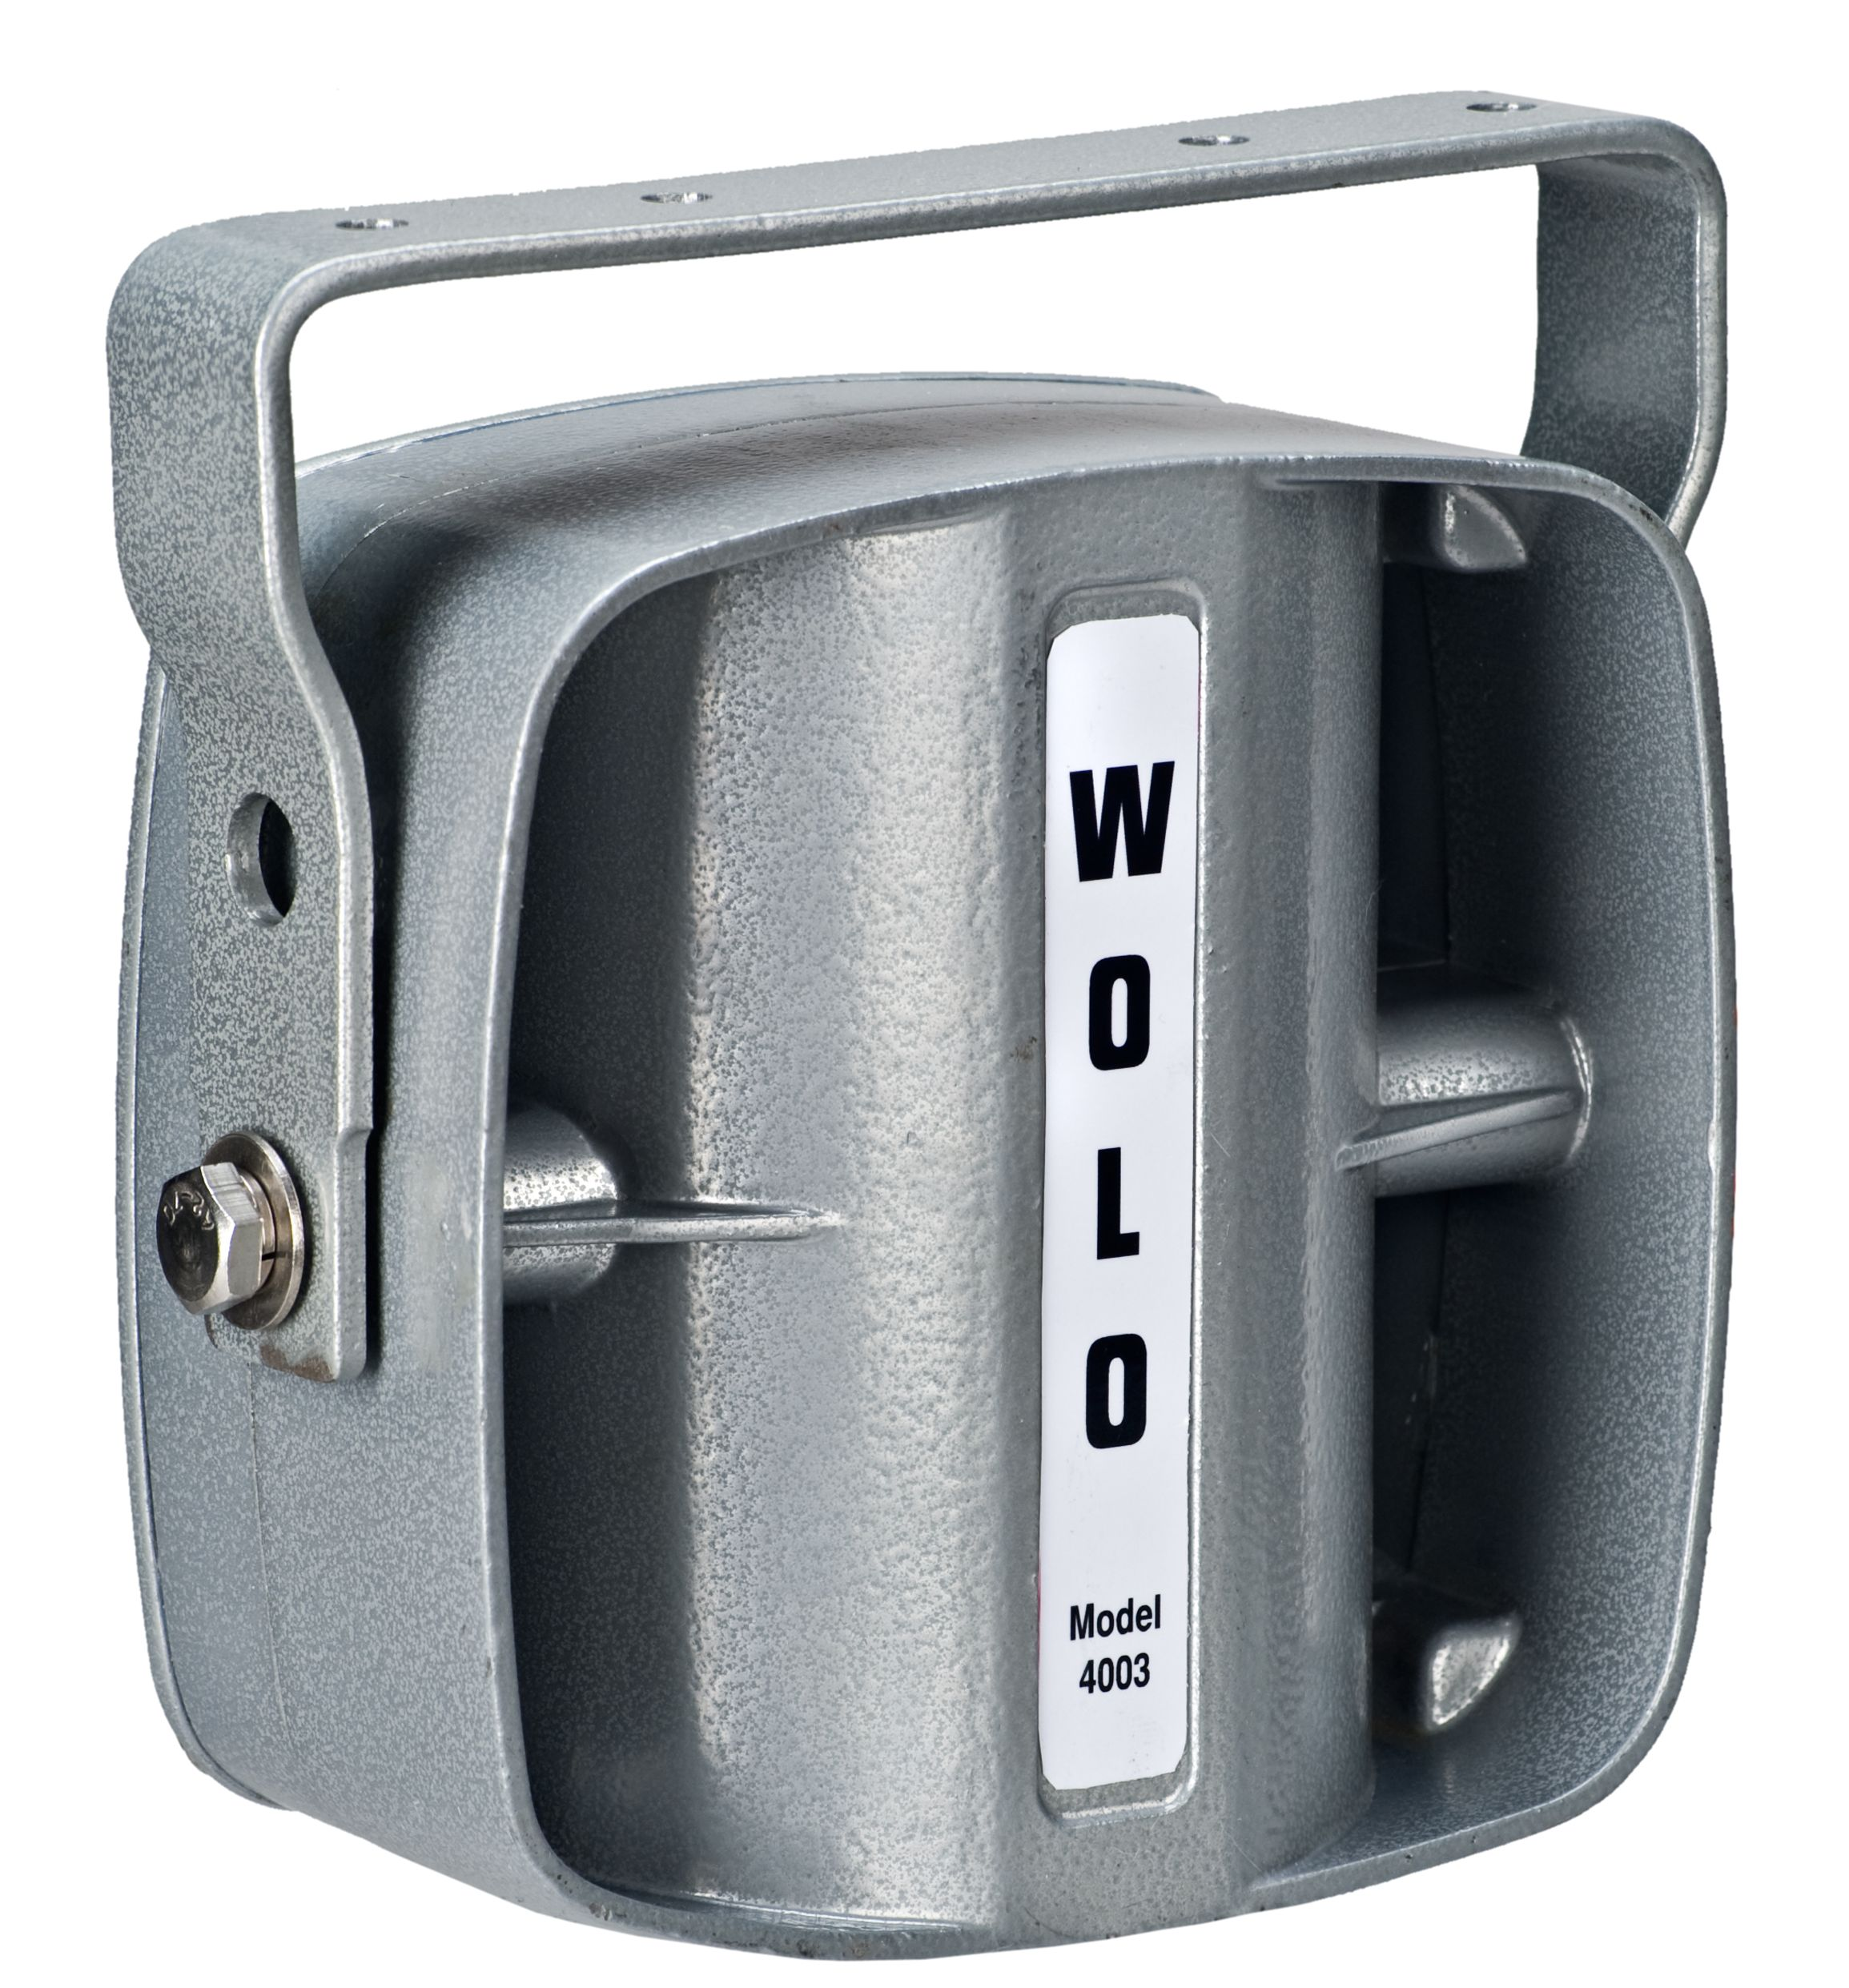 Wolo Mfg Corp Emergency Vehicle Sirens Change Whelen Siren Tones Click To Enlarge Picture Of Model 4003